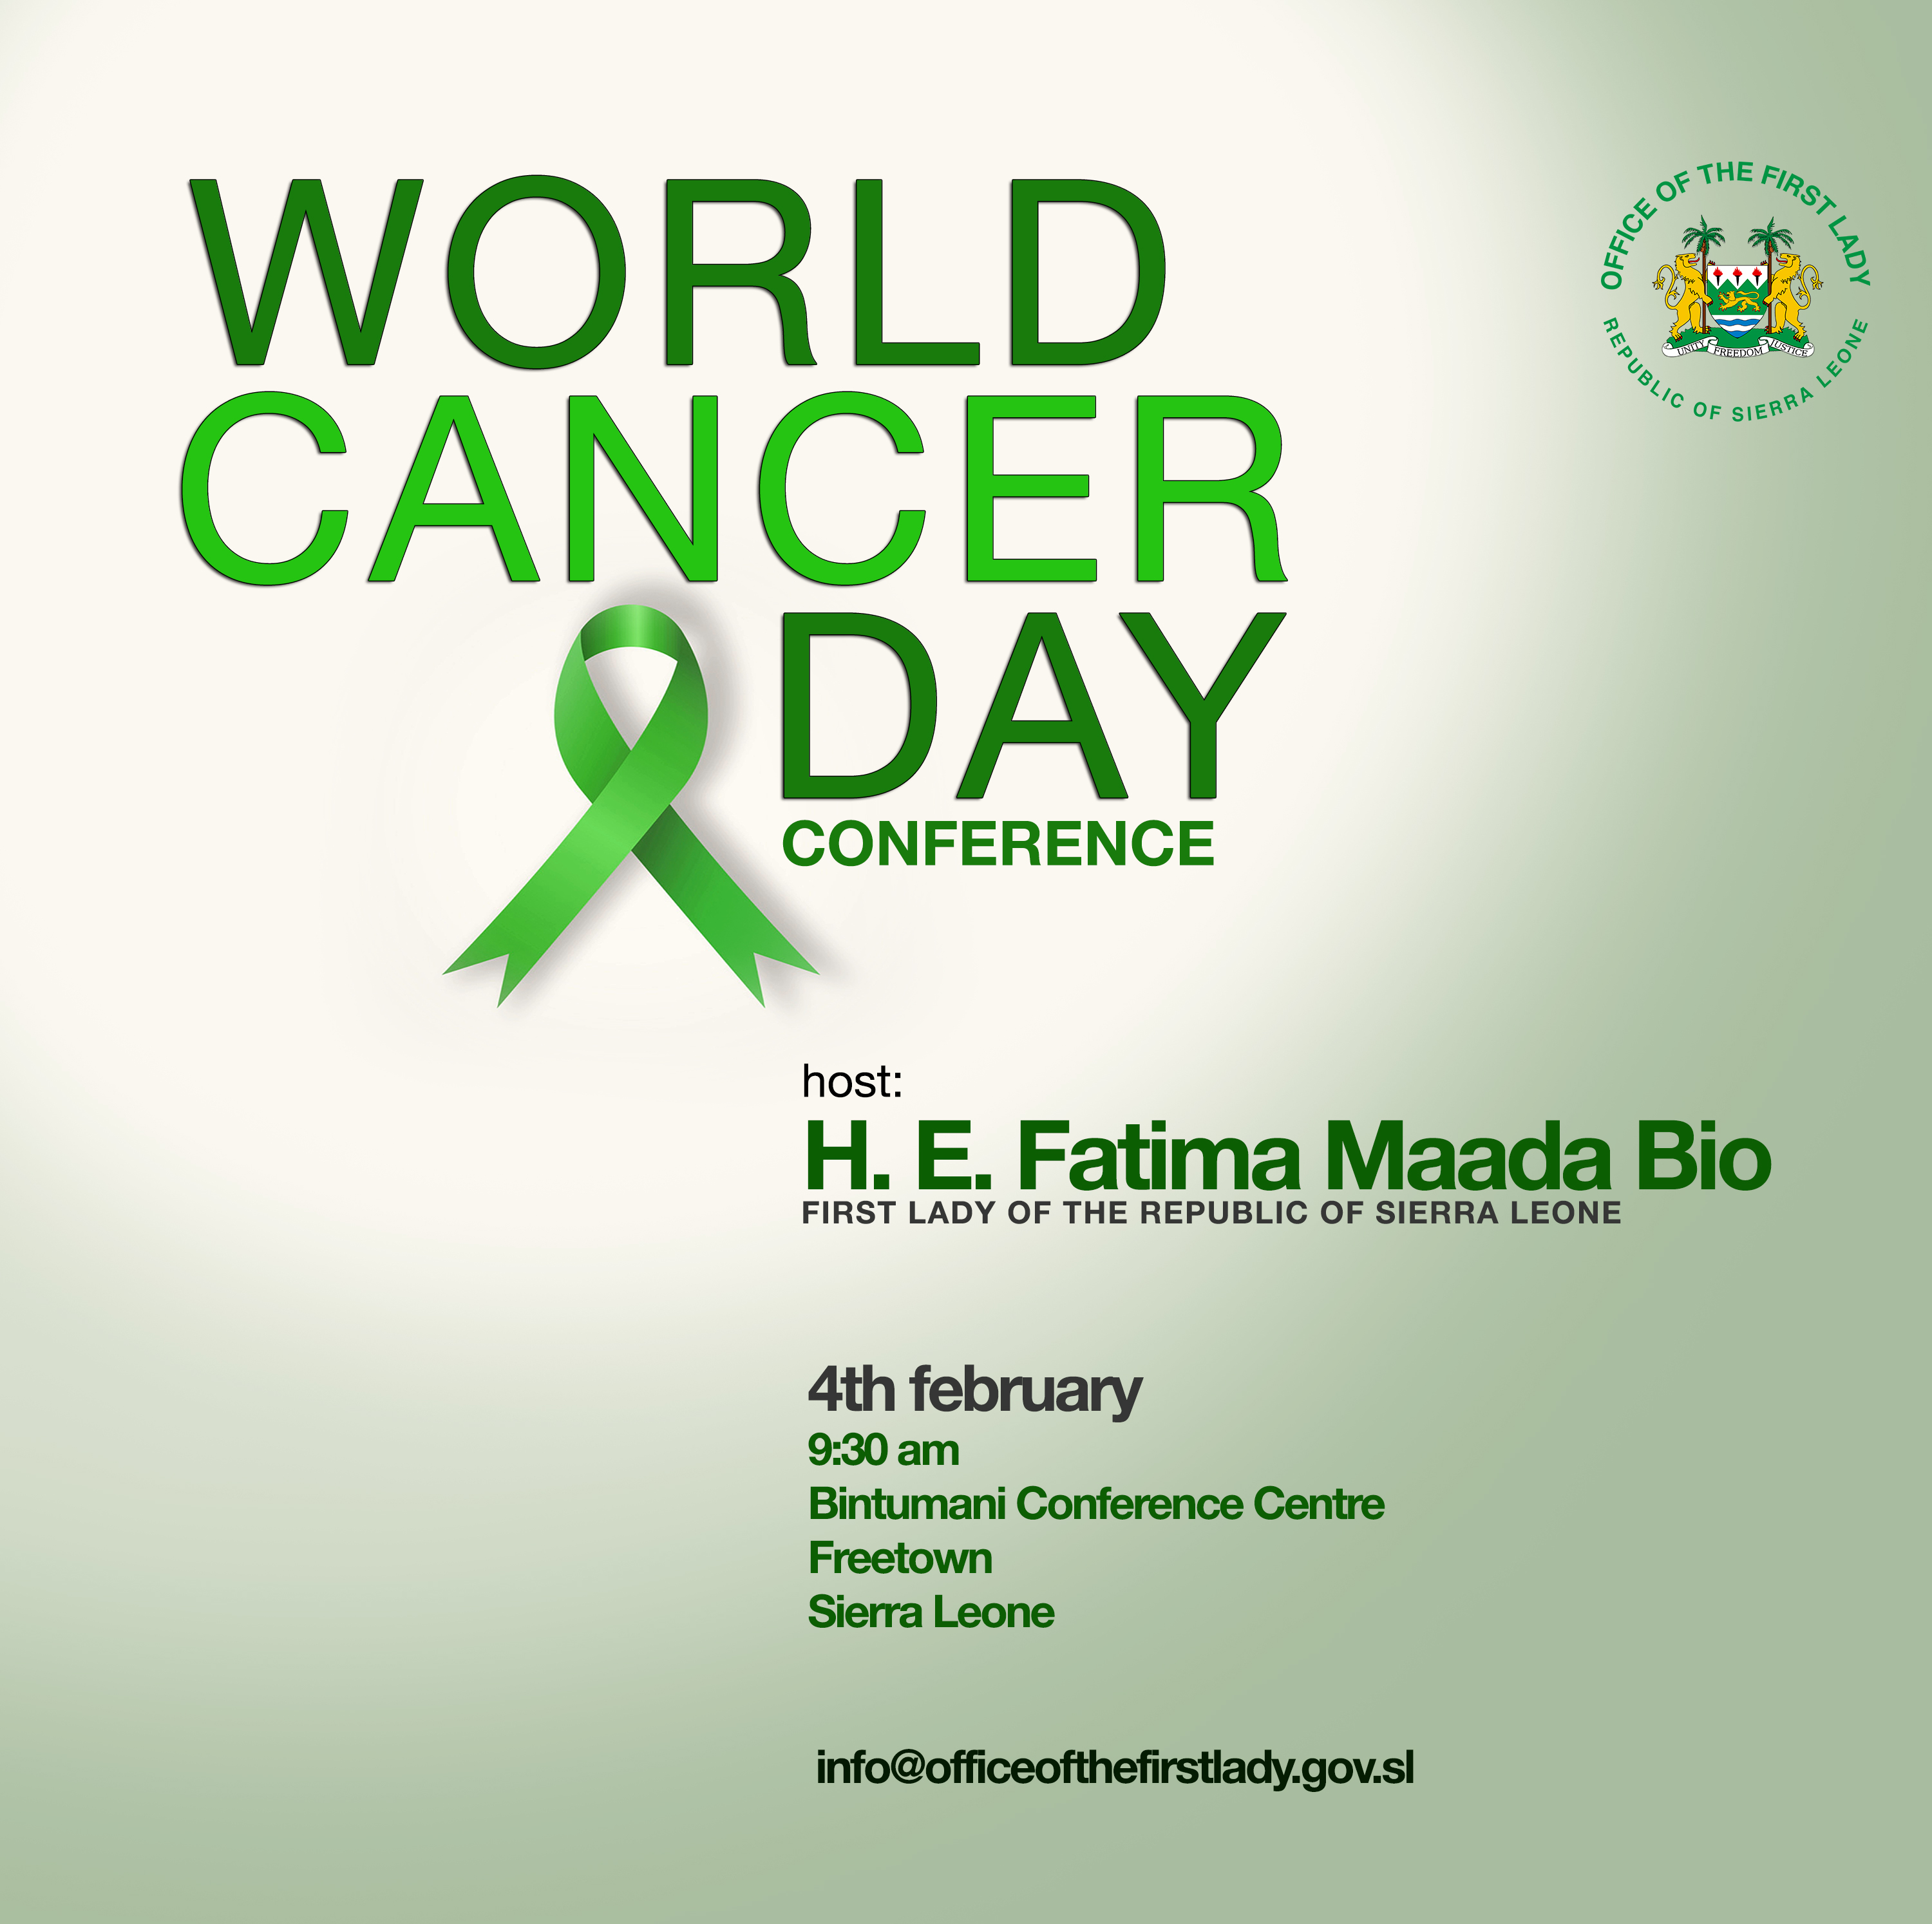 World Cancer Day Conference . 4th Feb in Freetown Sierra Leone.